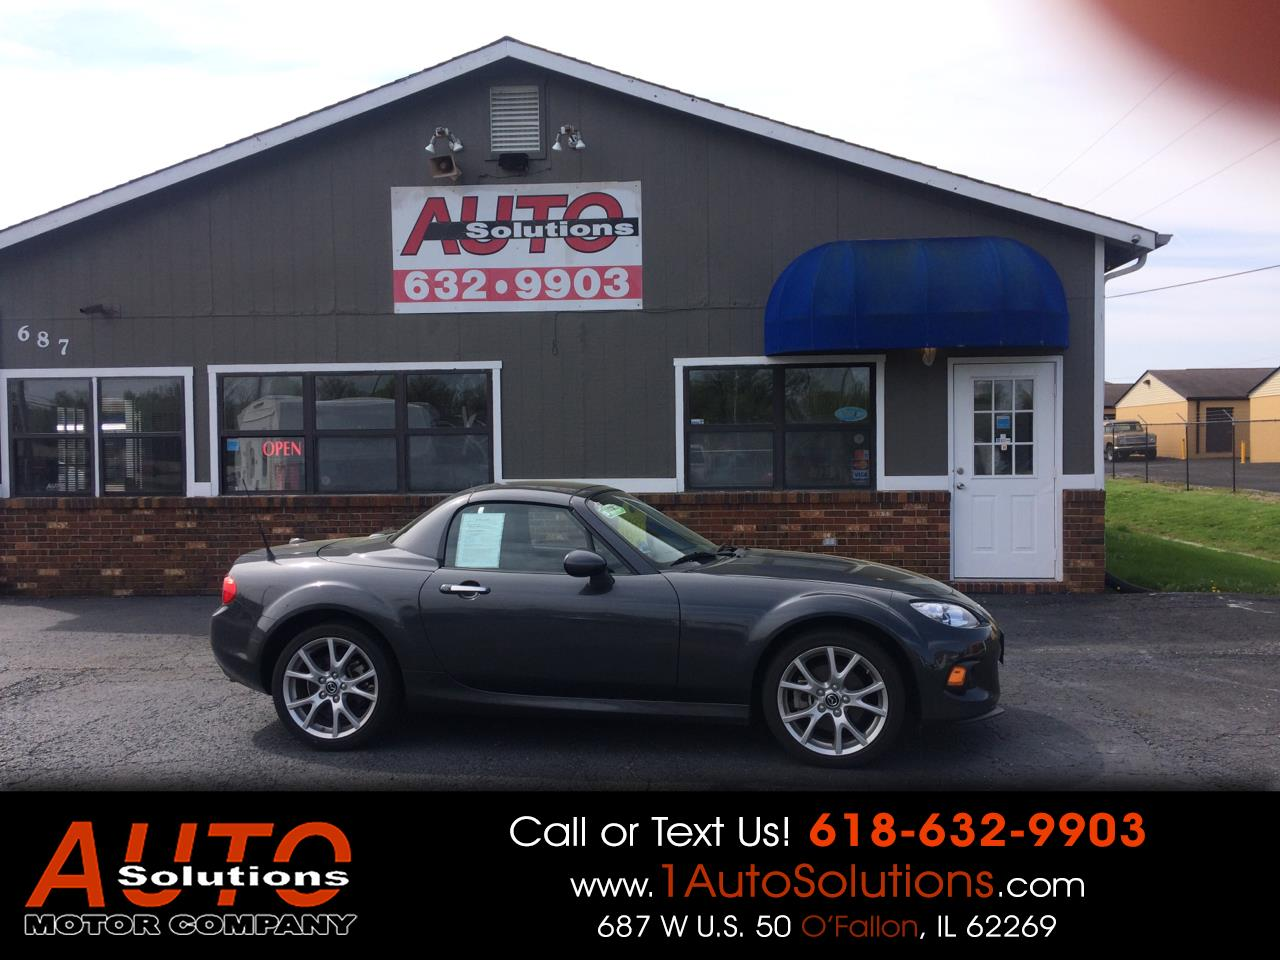 2014 Mazda MX-5 Miata 2dr Conv Hard Top Auto Grand Touring